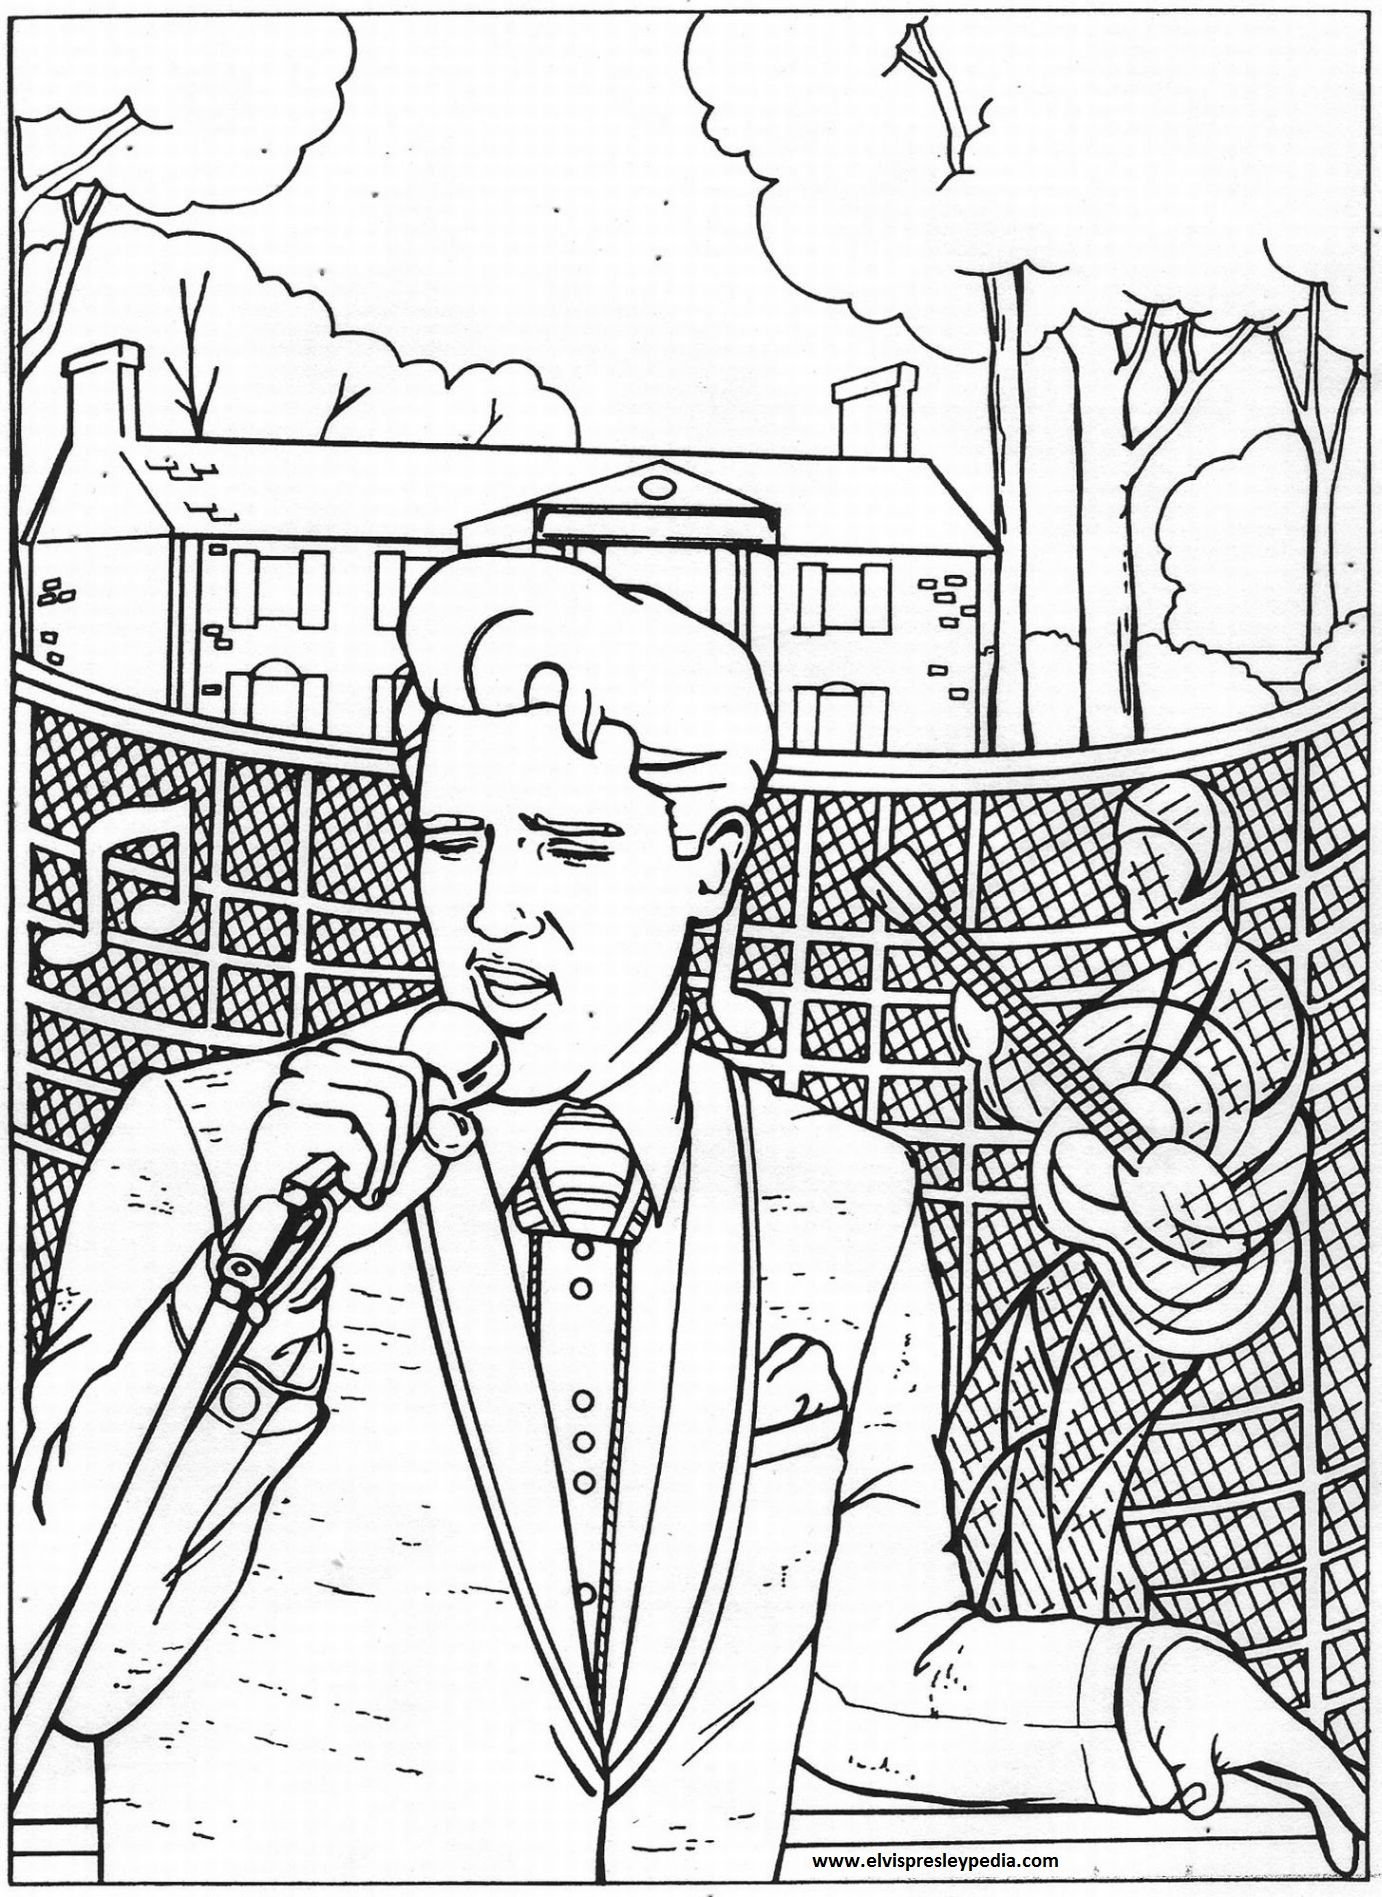 In Memory Of Elvis Presley Coloring